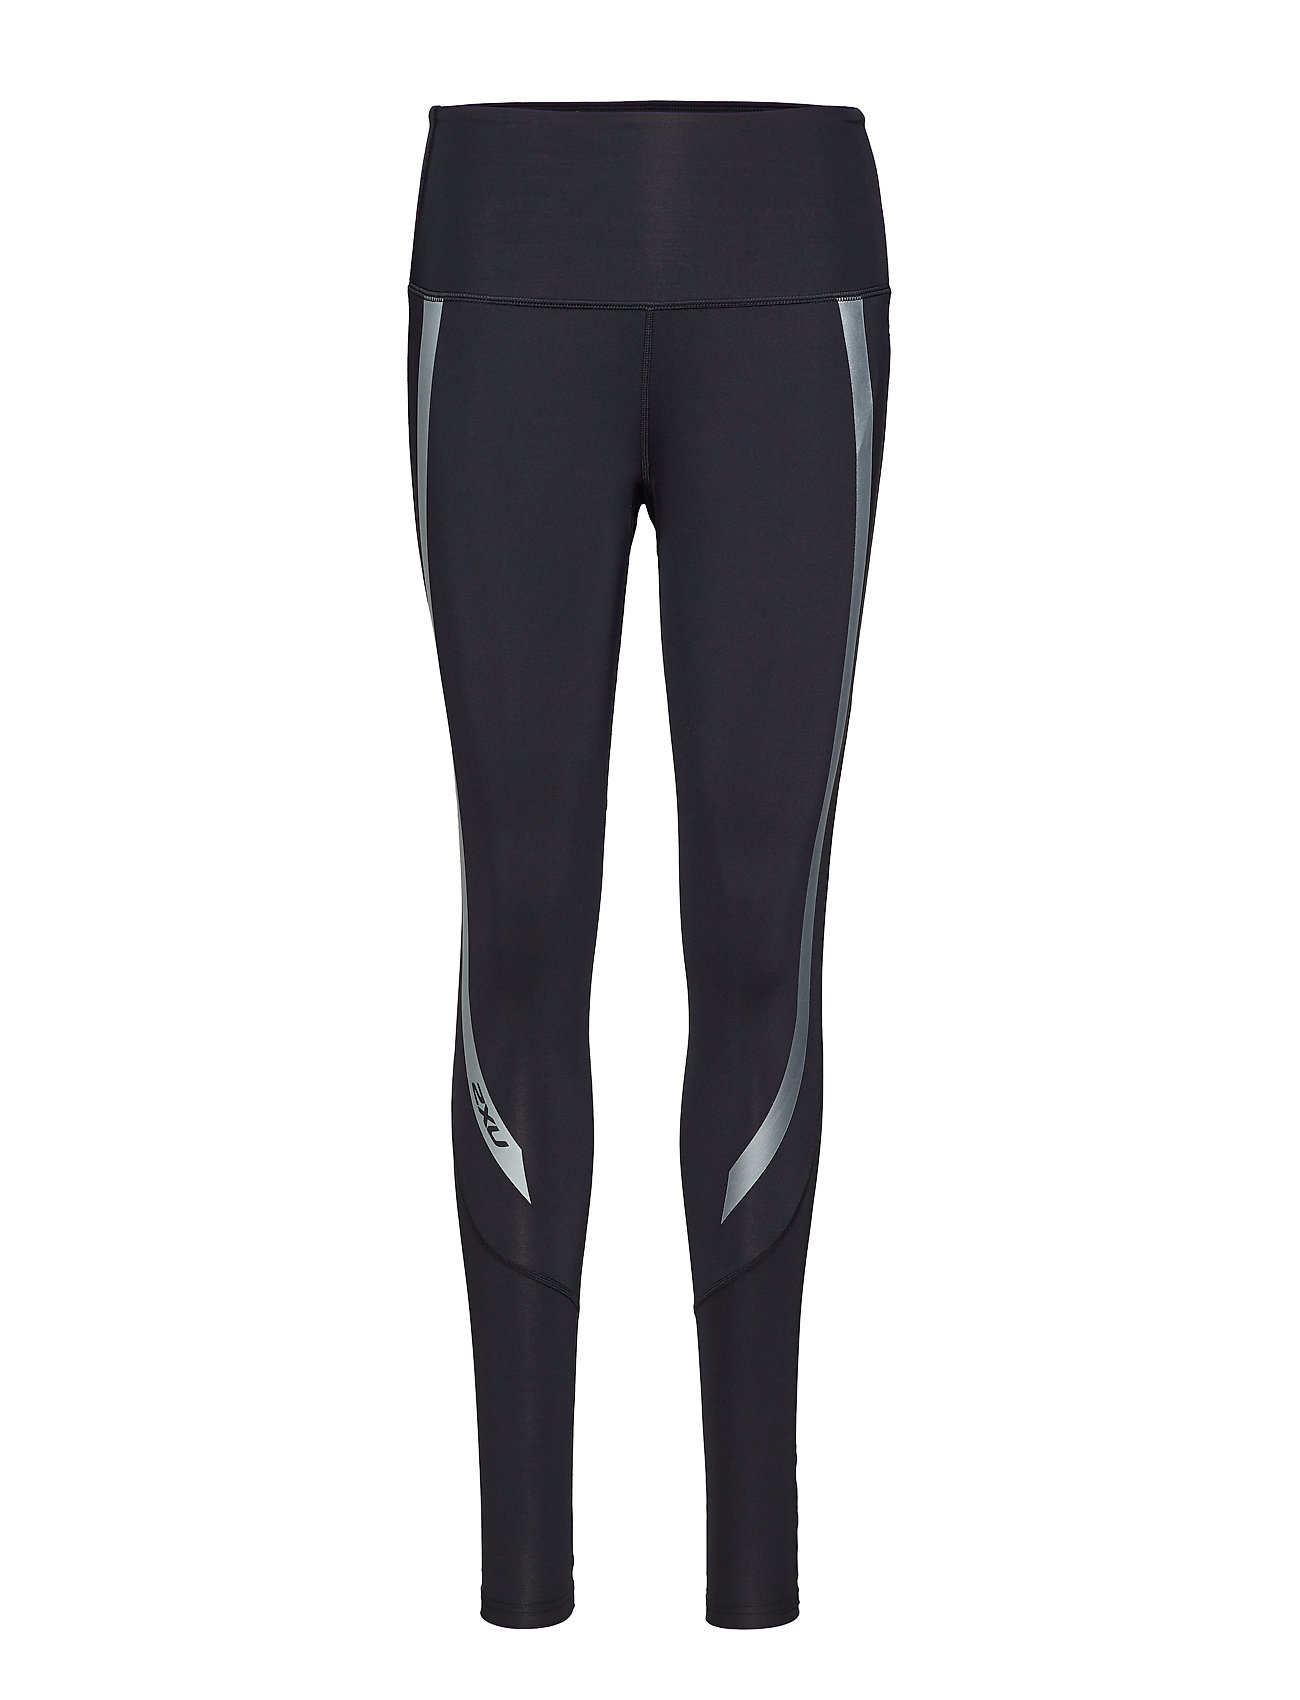 e673e983 Hi-rise Compression Tights (Black/silver) (£54.50) - 2XU - | Boozt.com